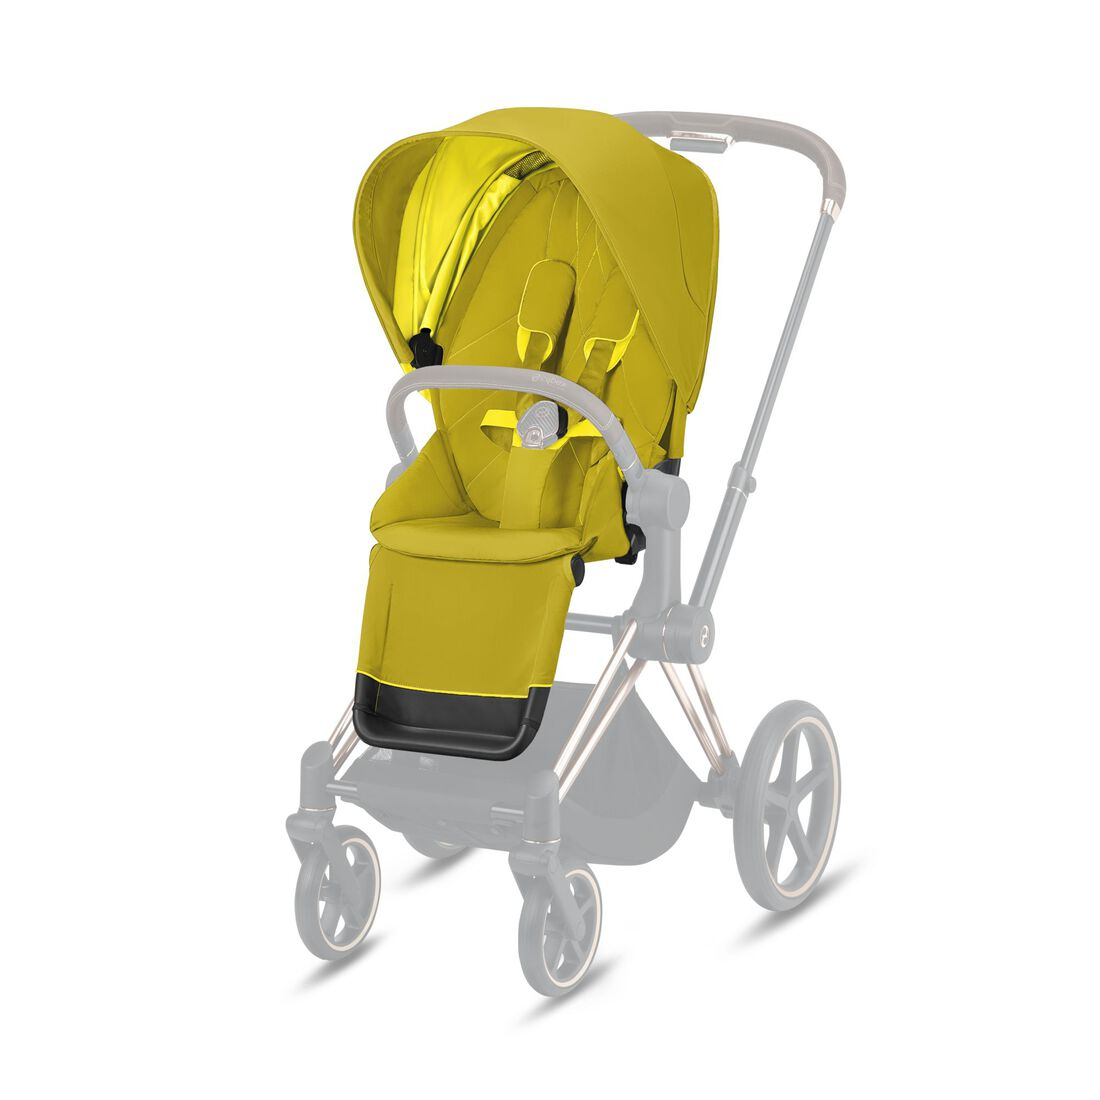 CYBEX Priam Seat Pack - Mustard Yellow in Mustard Yellow large image number 1